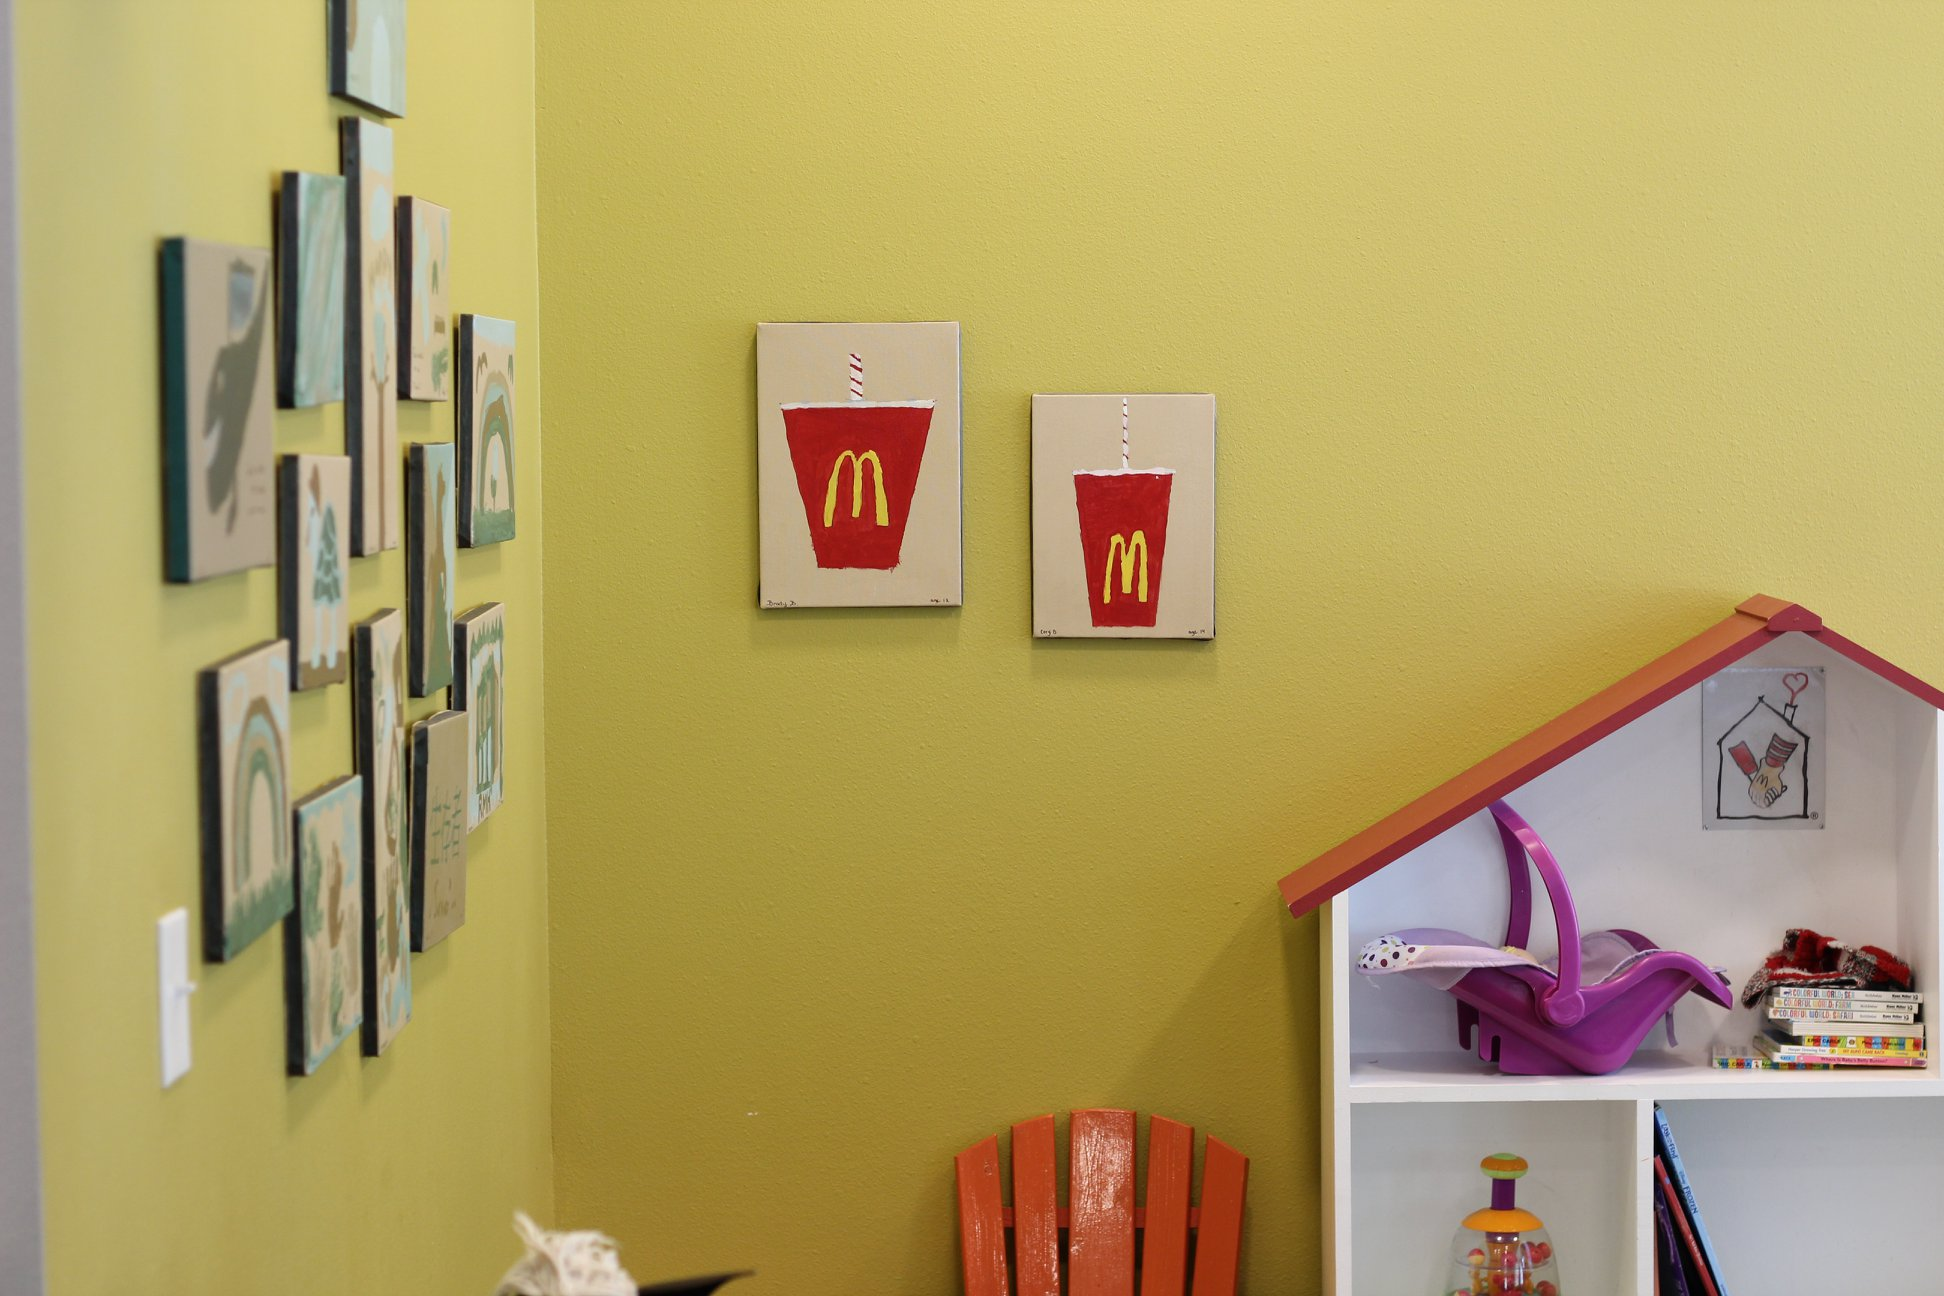 Inside the Ronald McDonald house